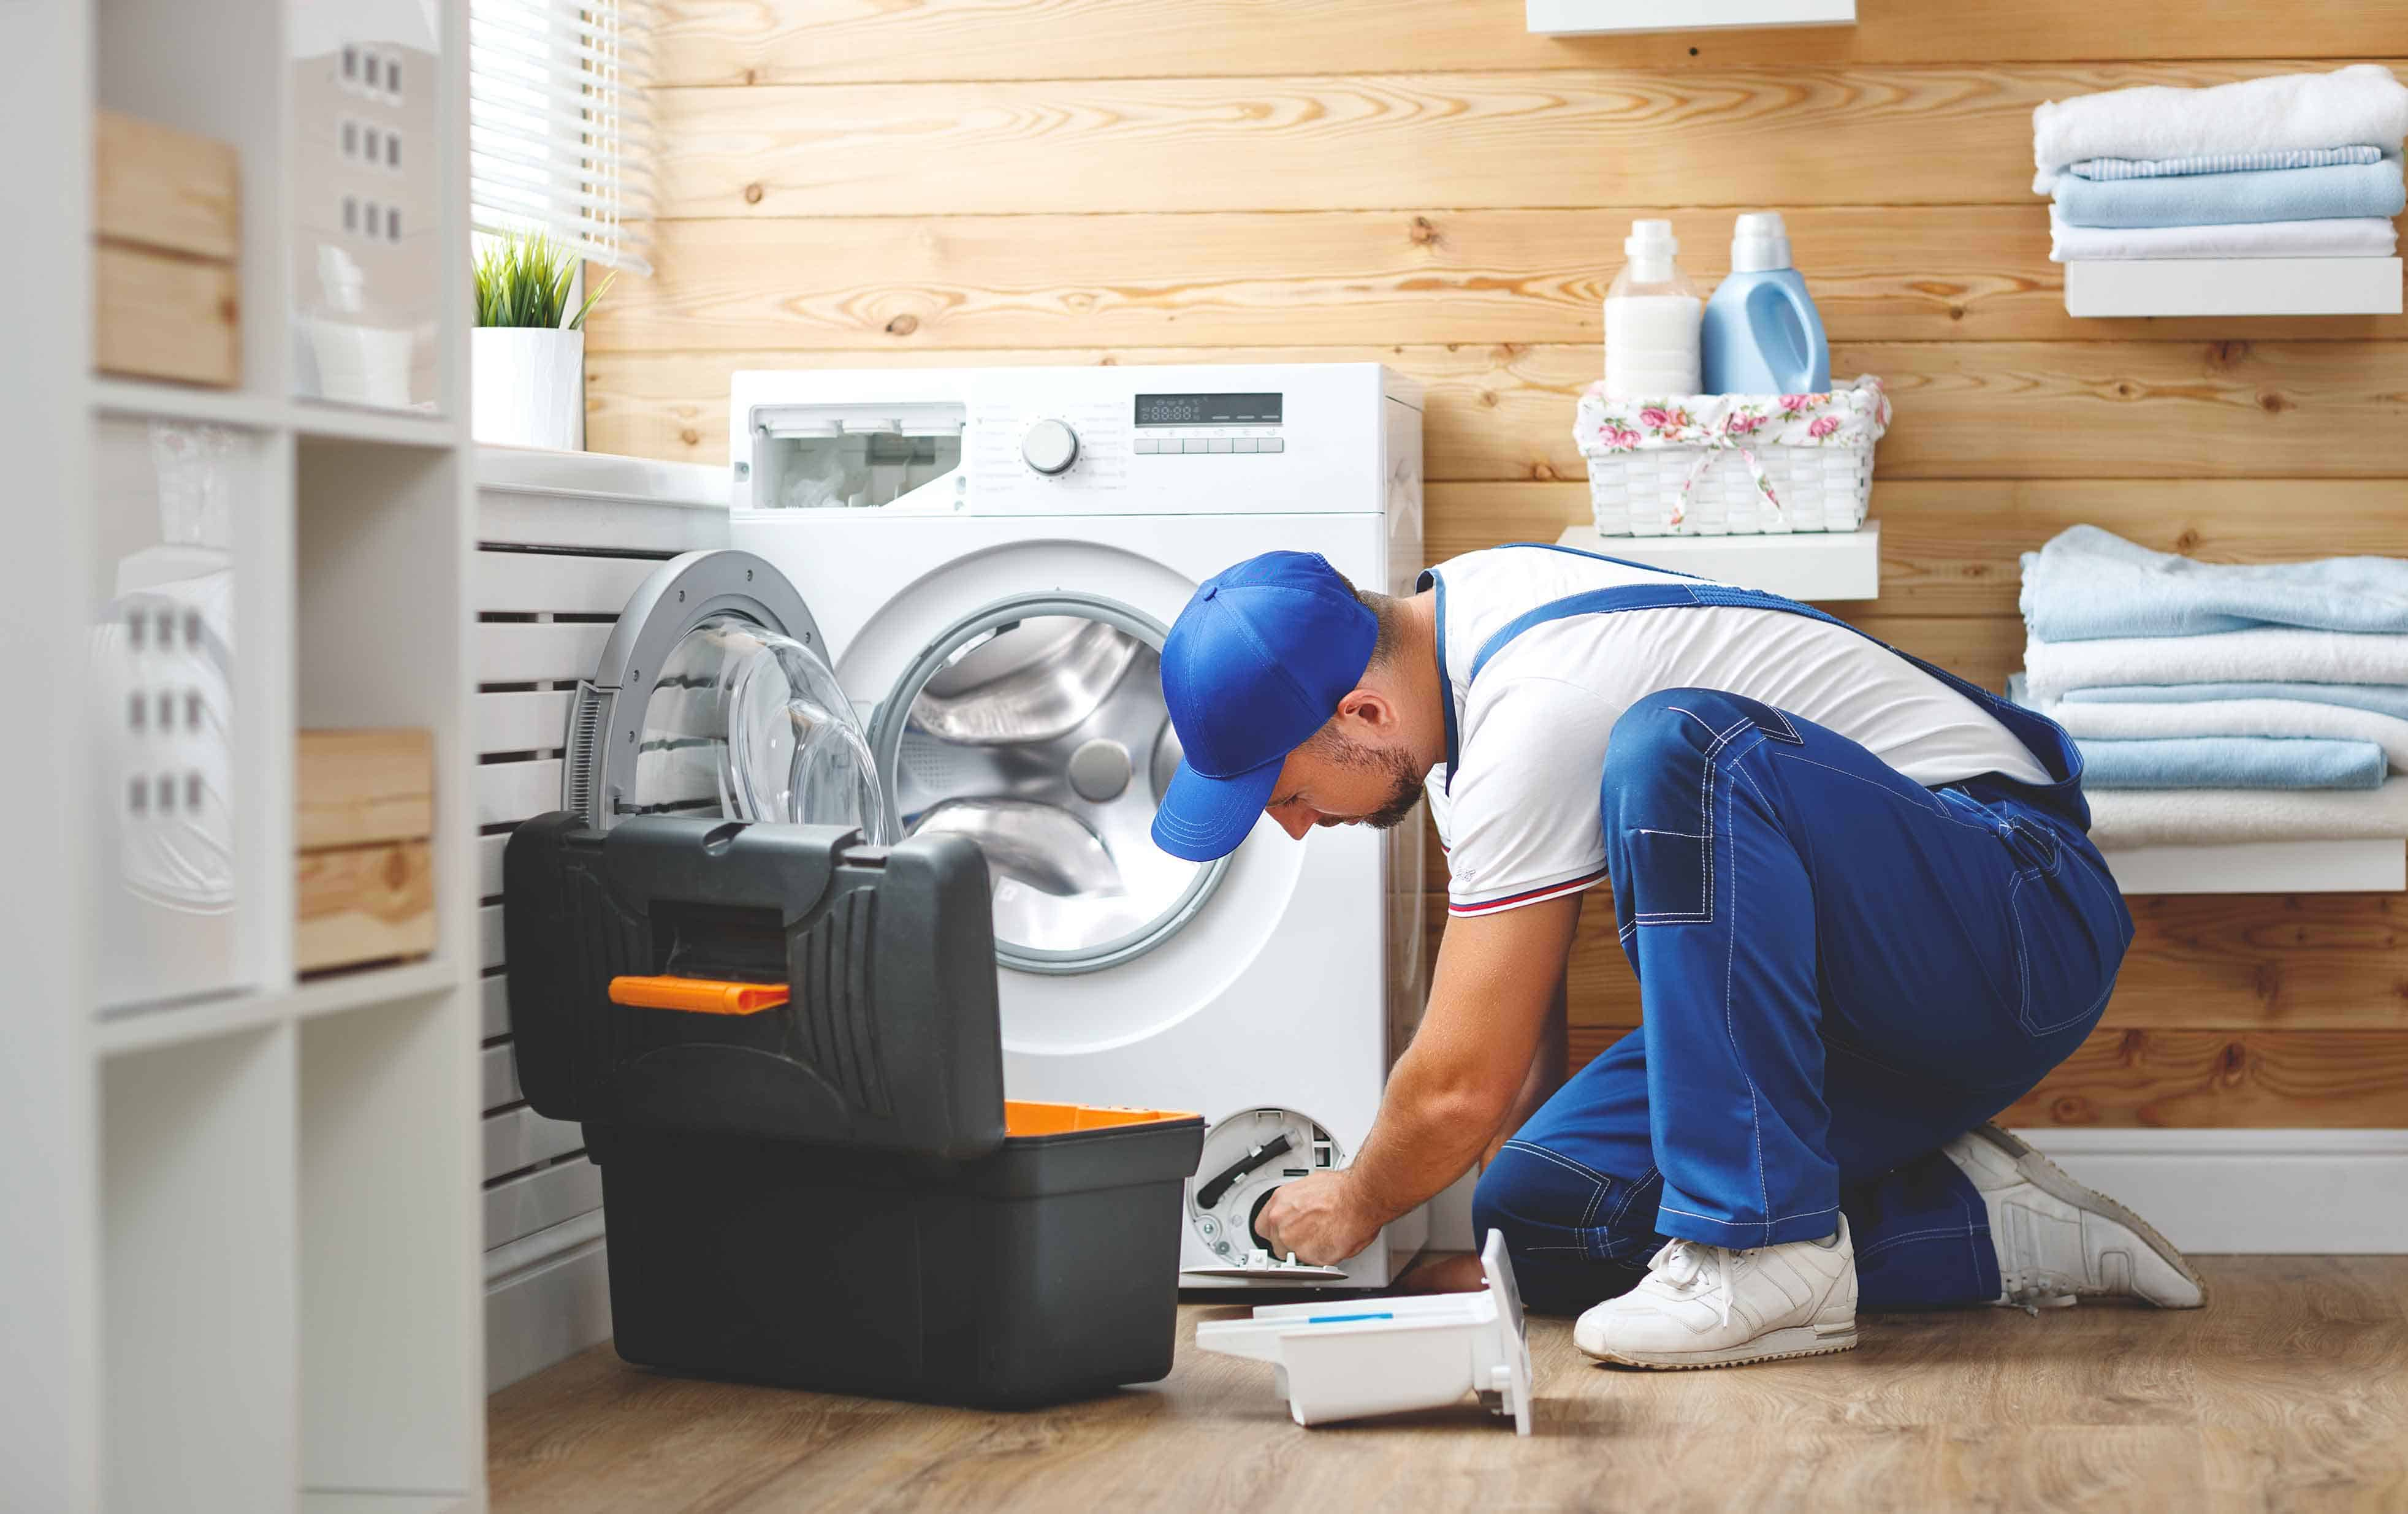 Finding an Appliance Service Repair Company You Trust